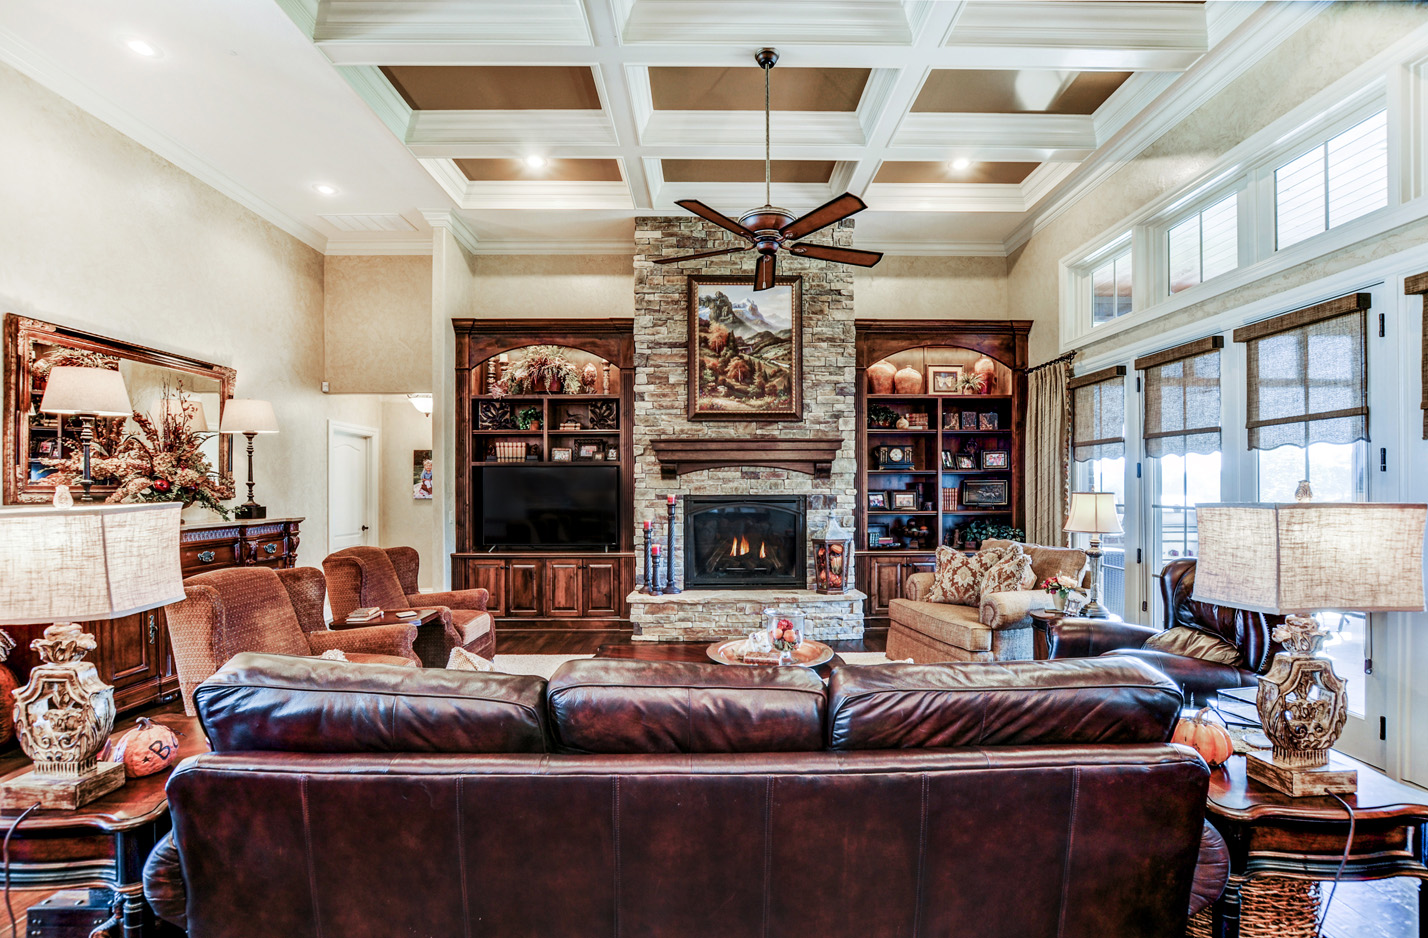 built-by-brett-custom-home-springfield-mo-13735-lawrence-2100-015.jpg